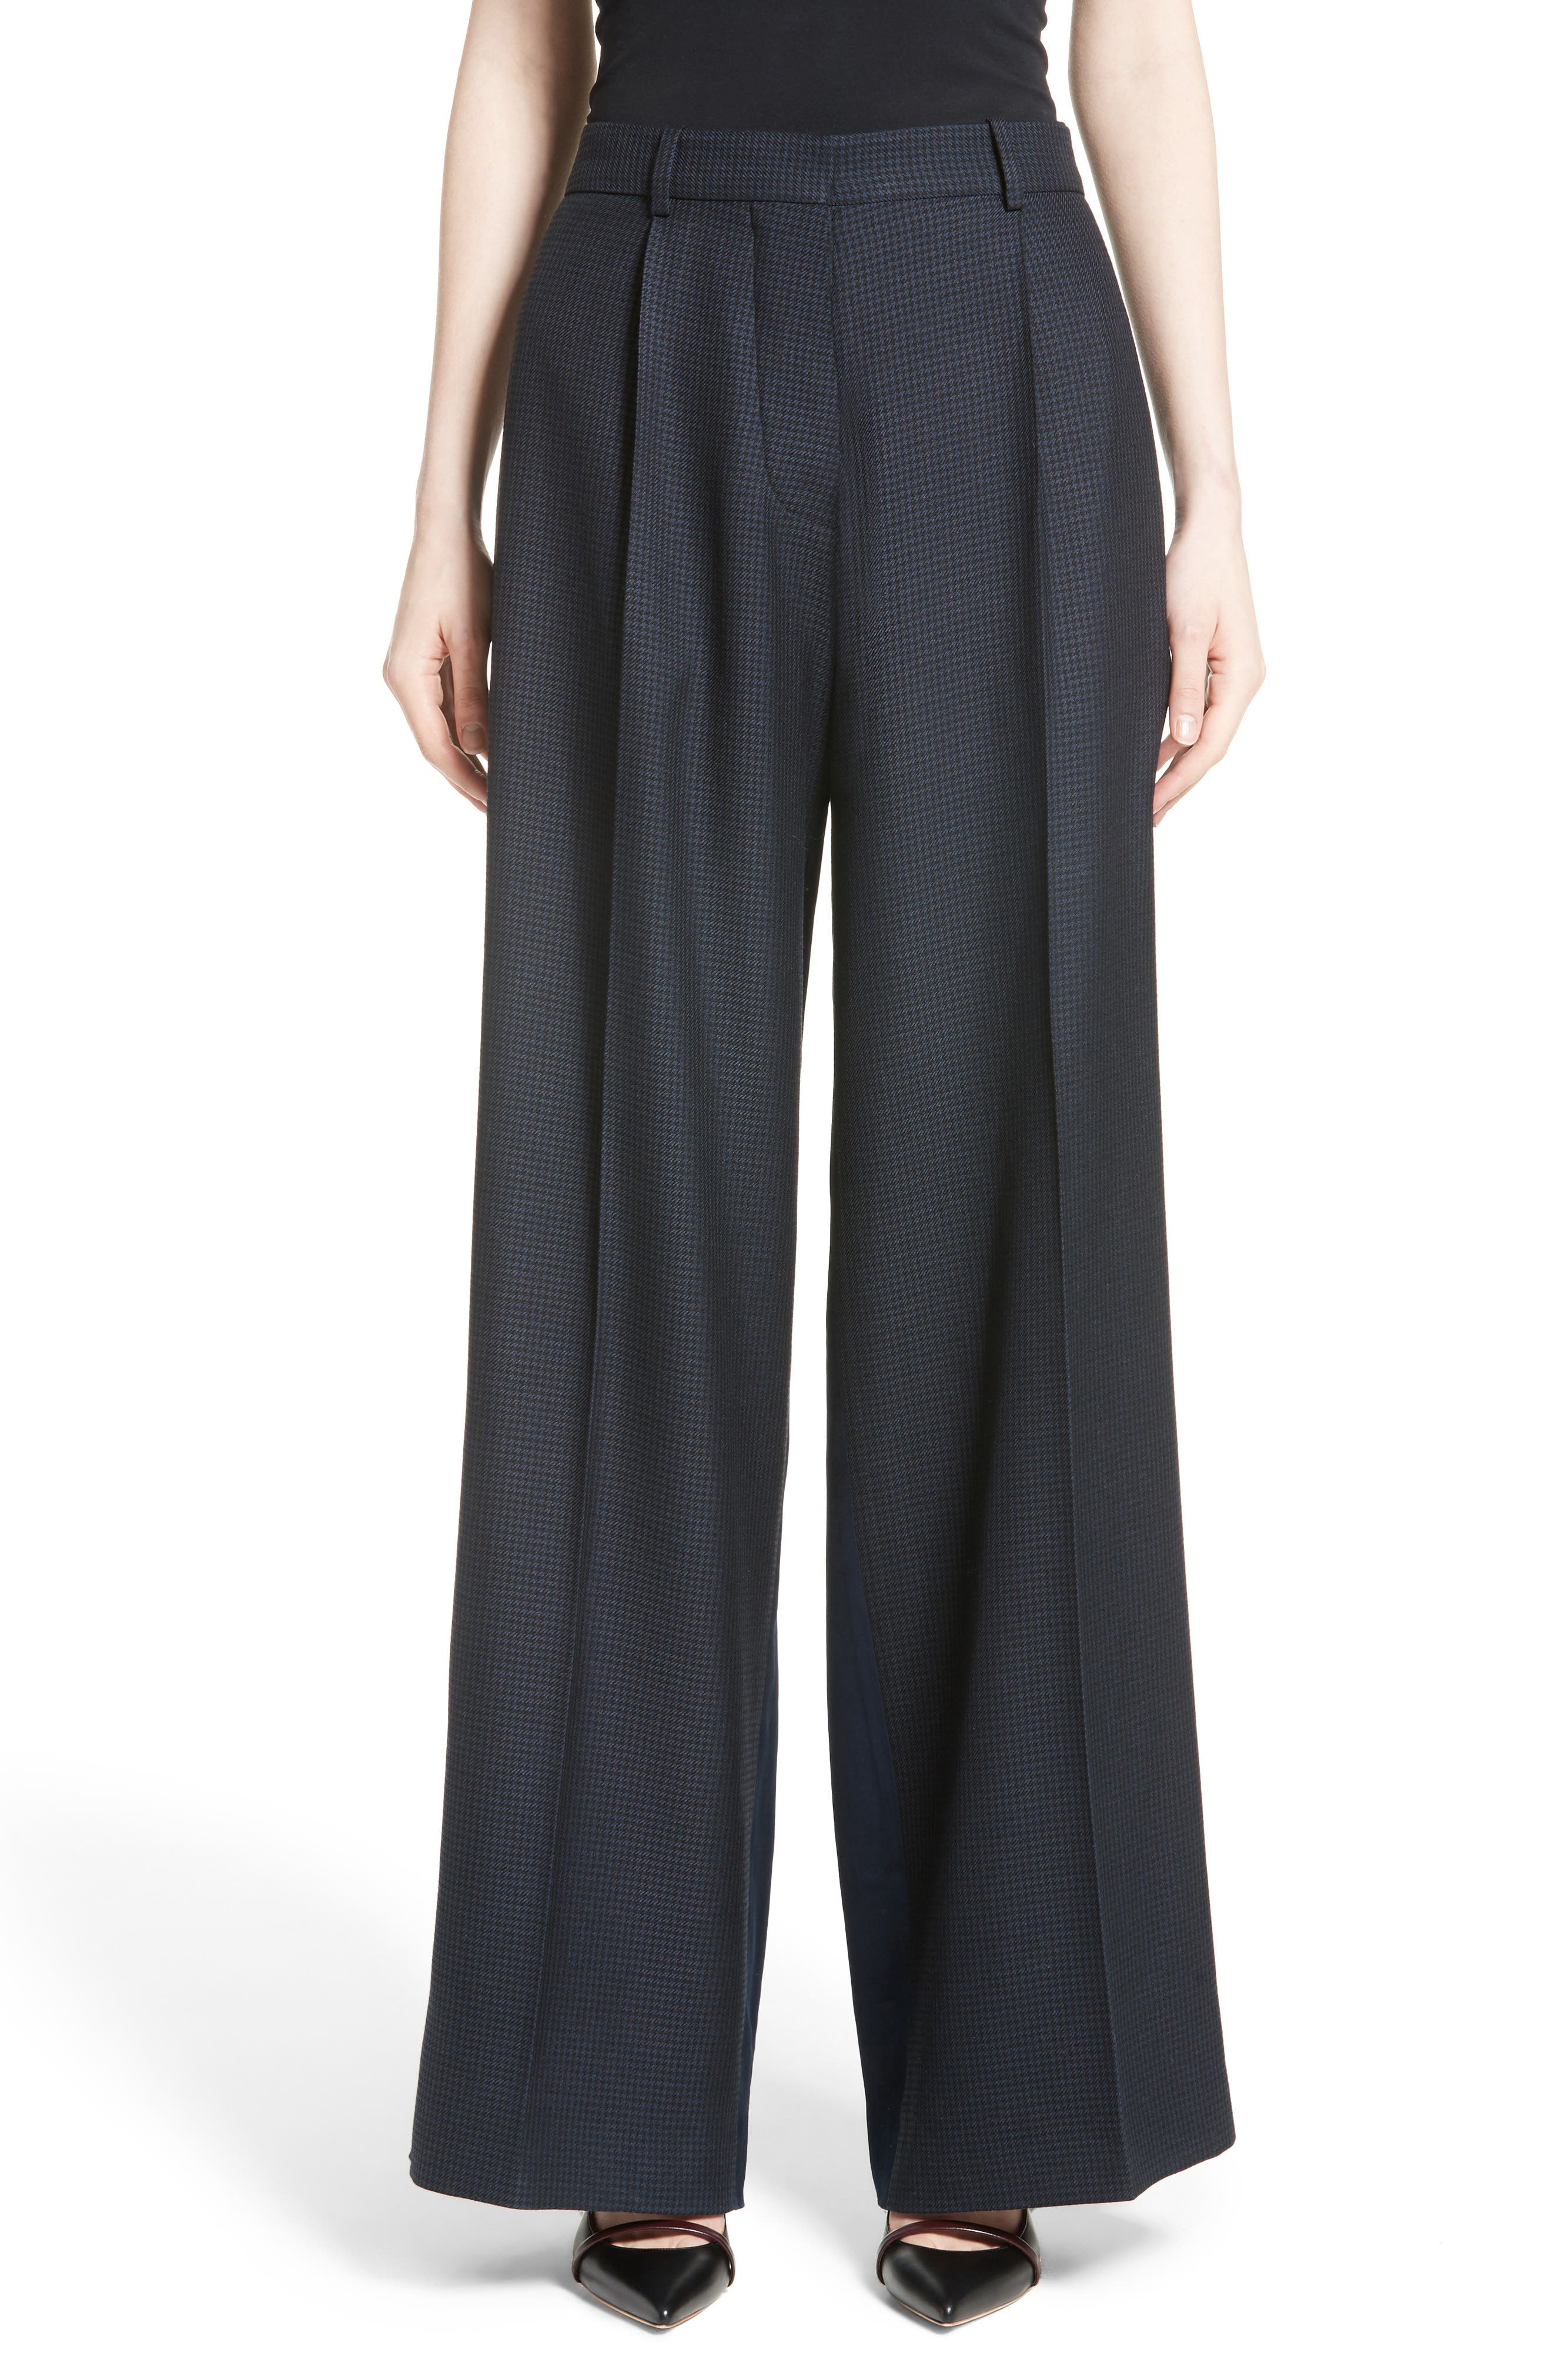 Alternate Image 1 Selected - Victoria Beckham Houndstooth Wide Leg Pants